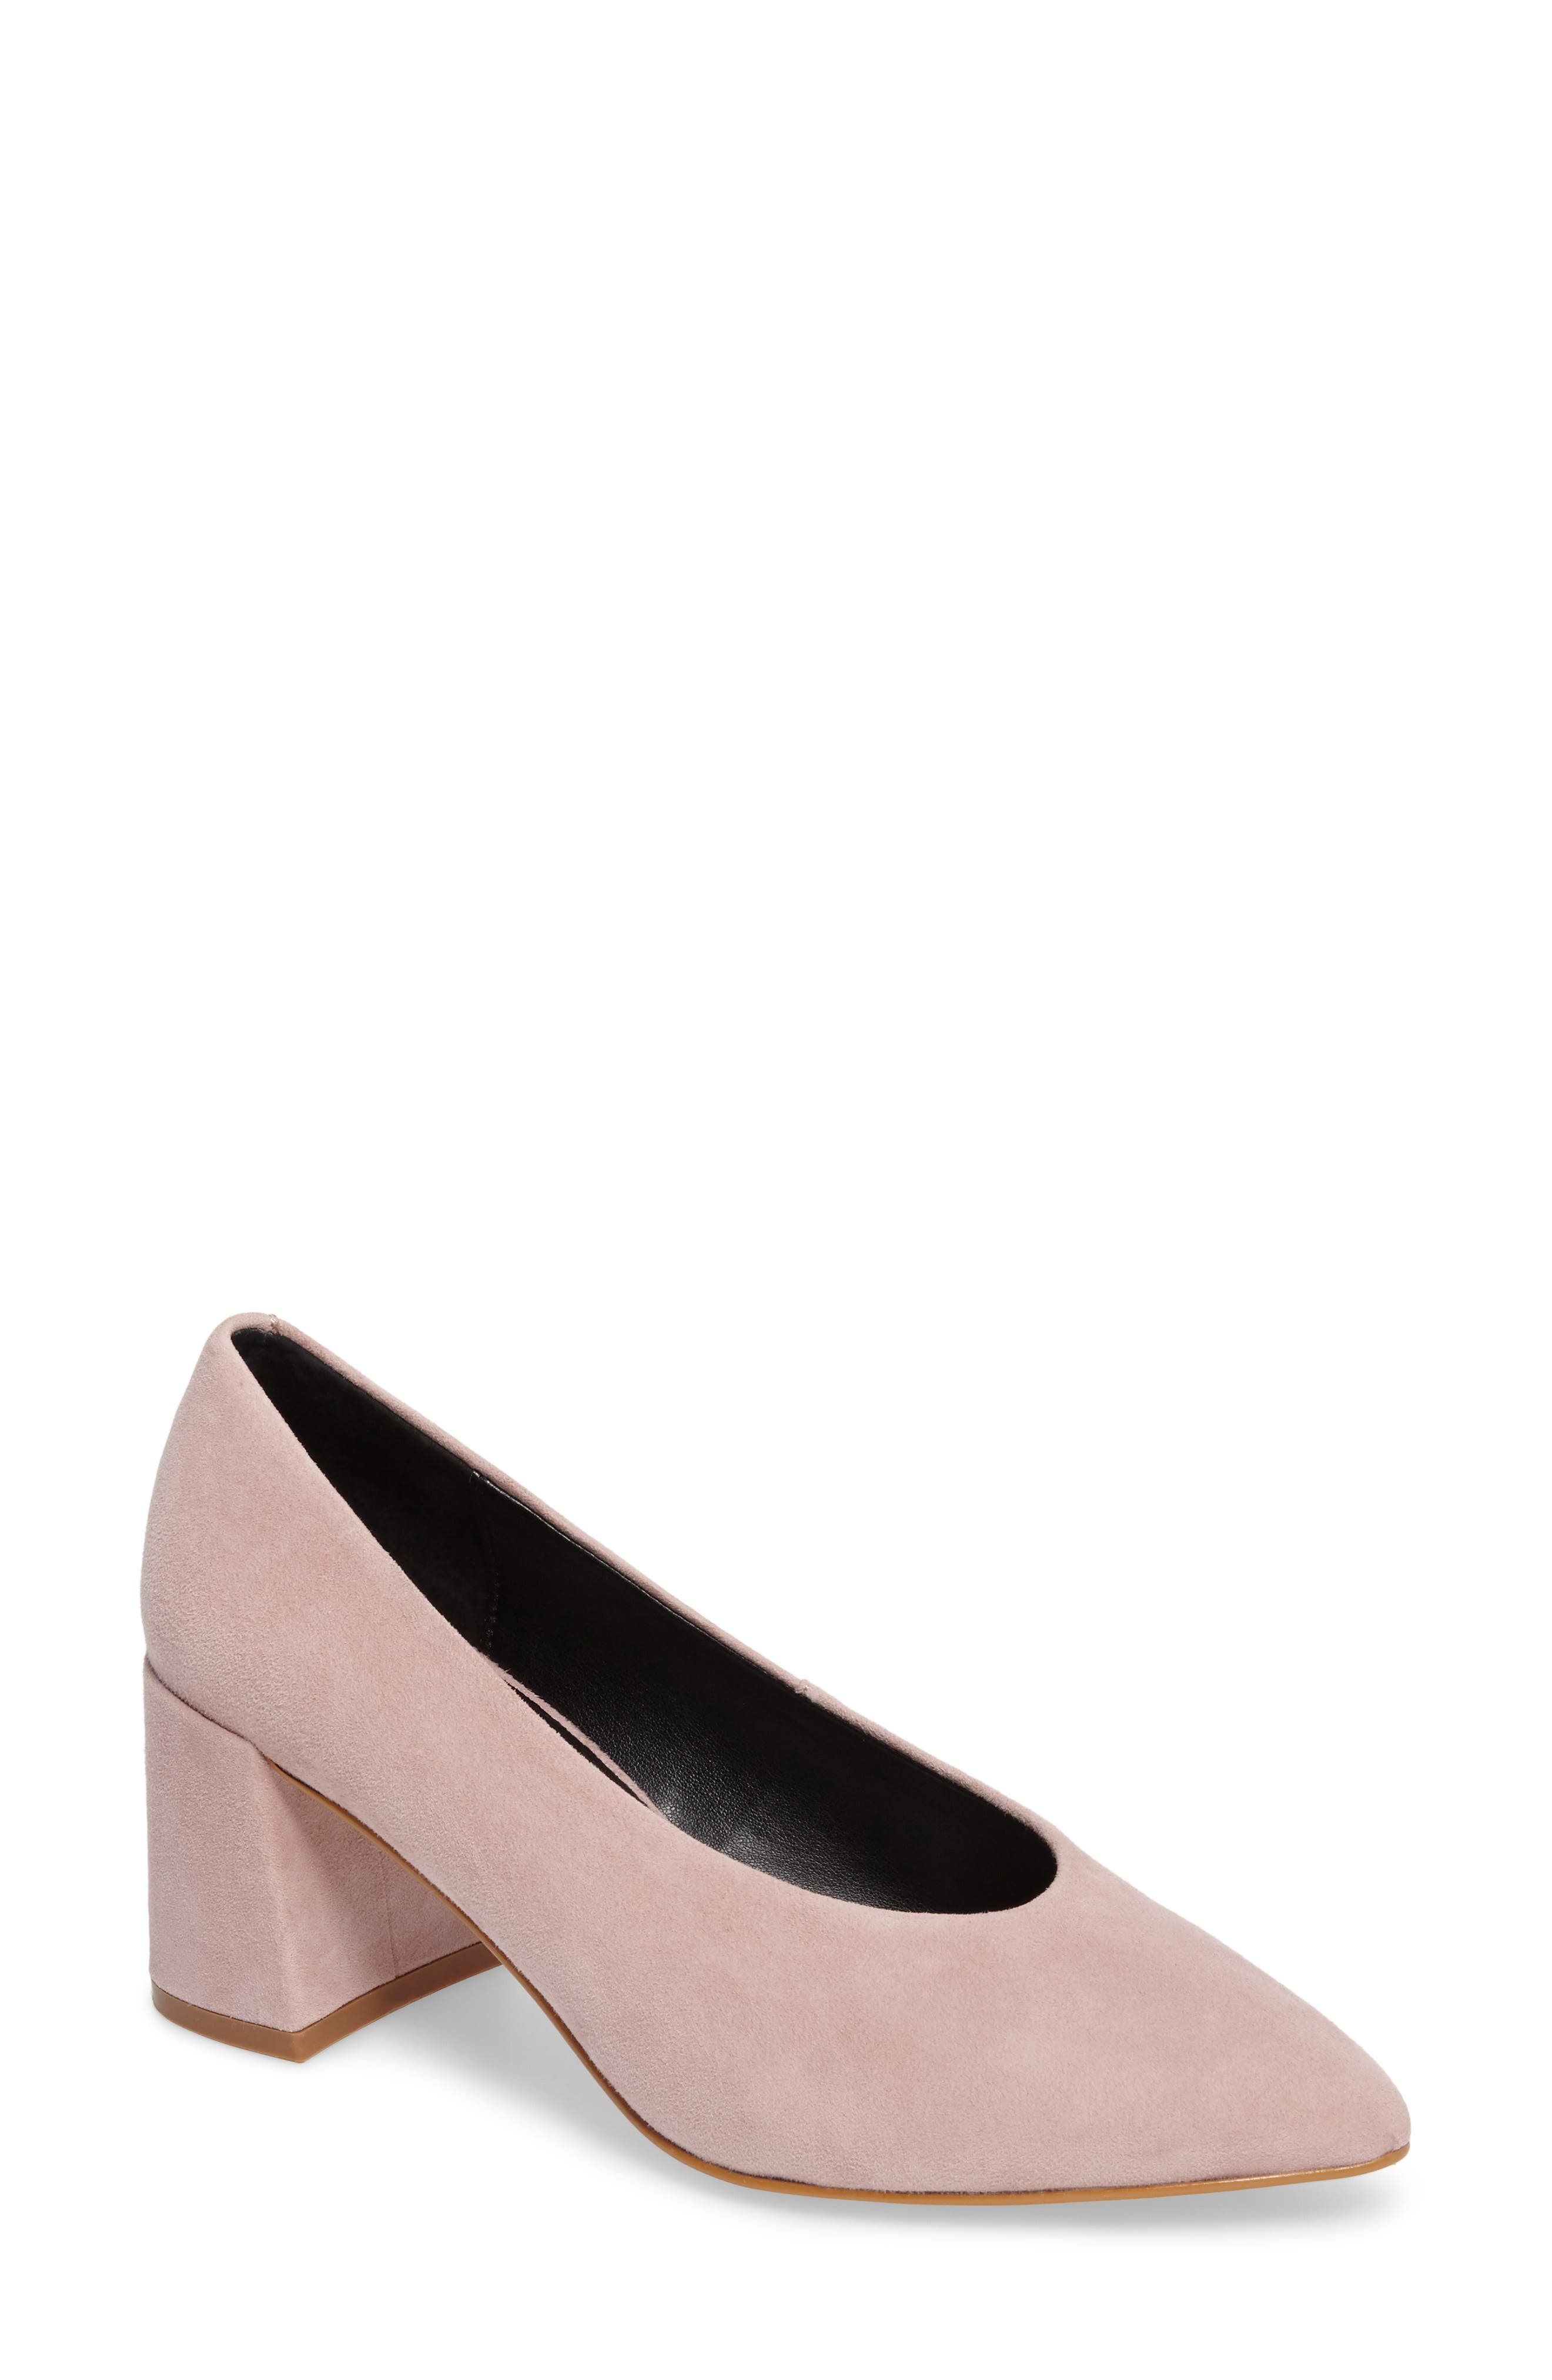 M4D3 Helen Statement Heel Pump (Women)